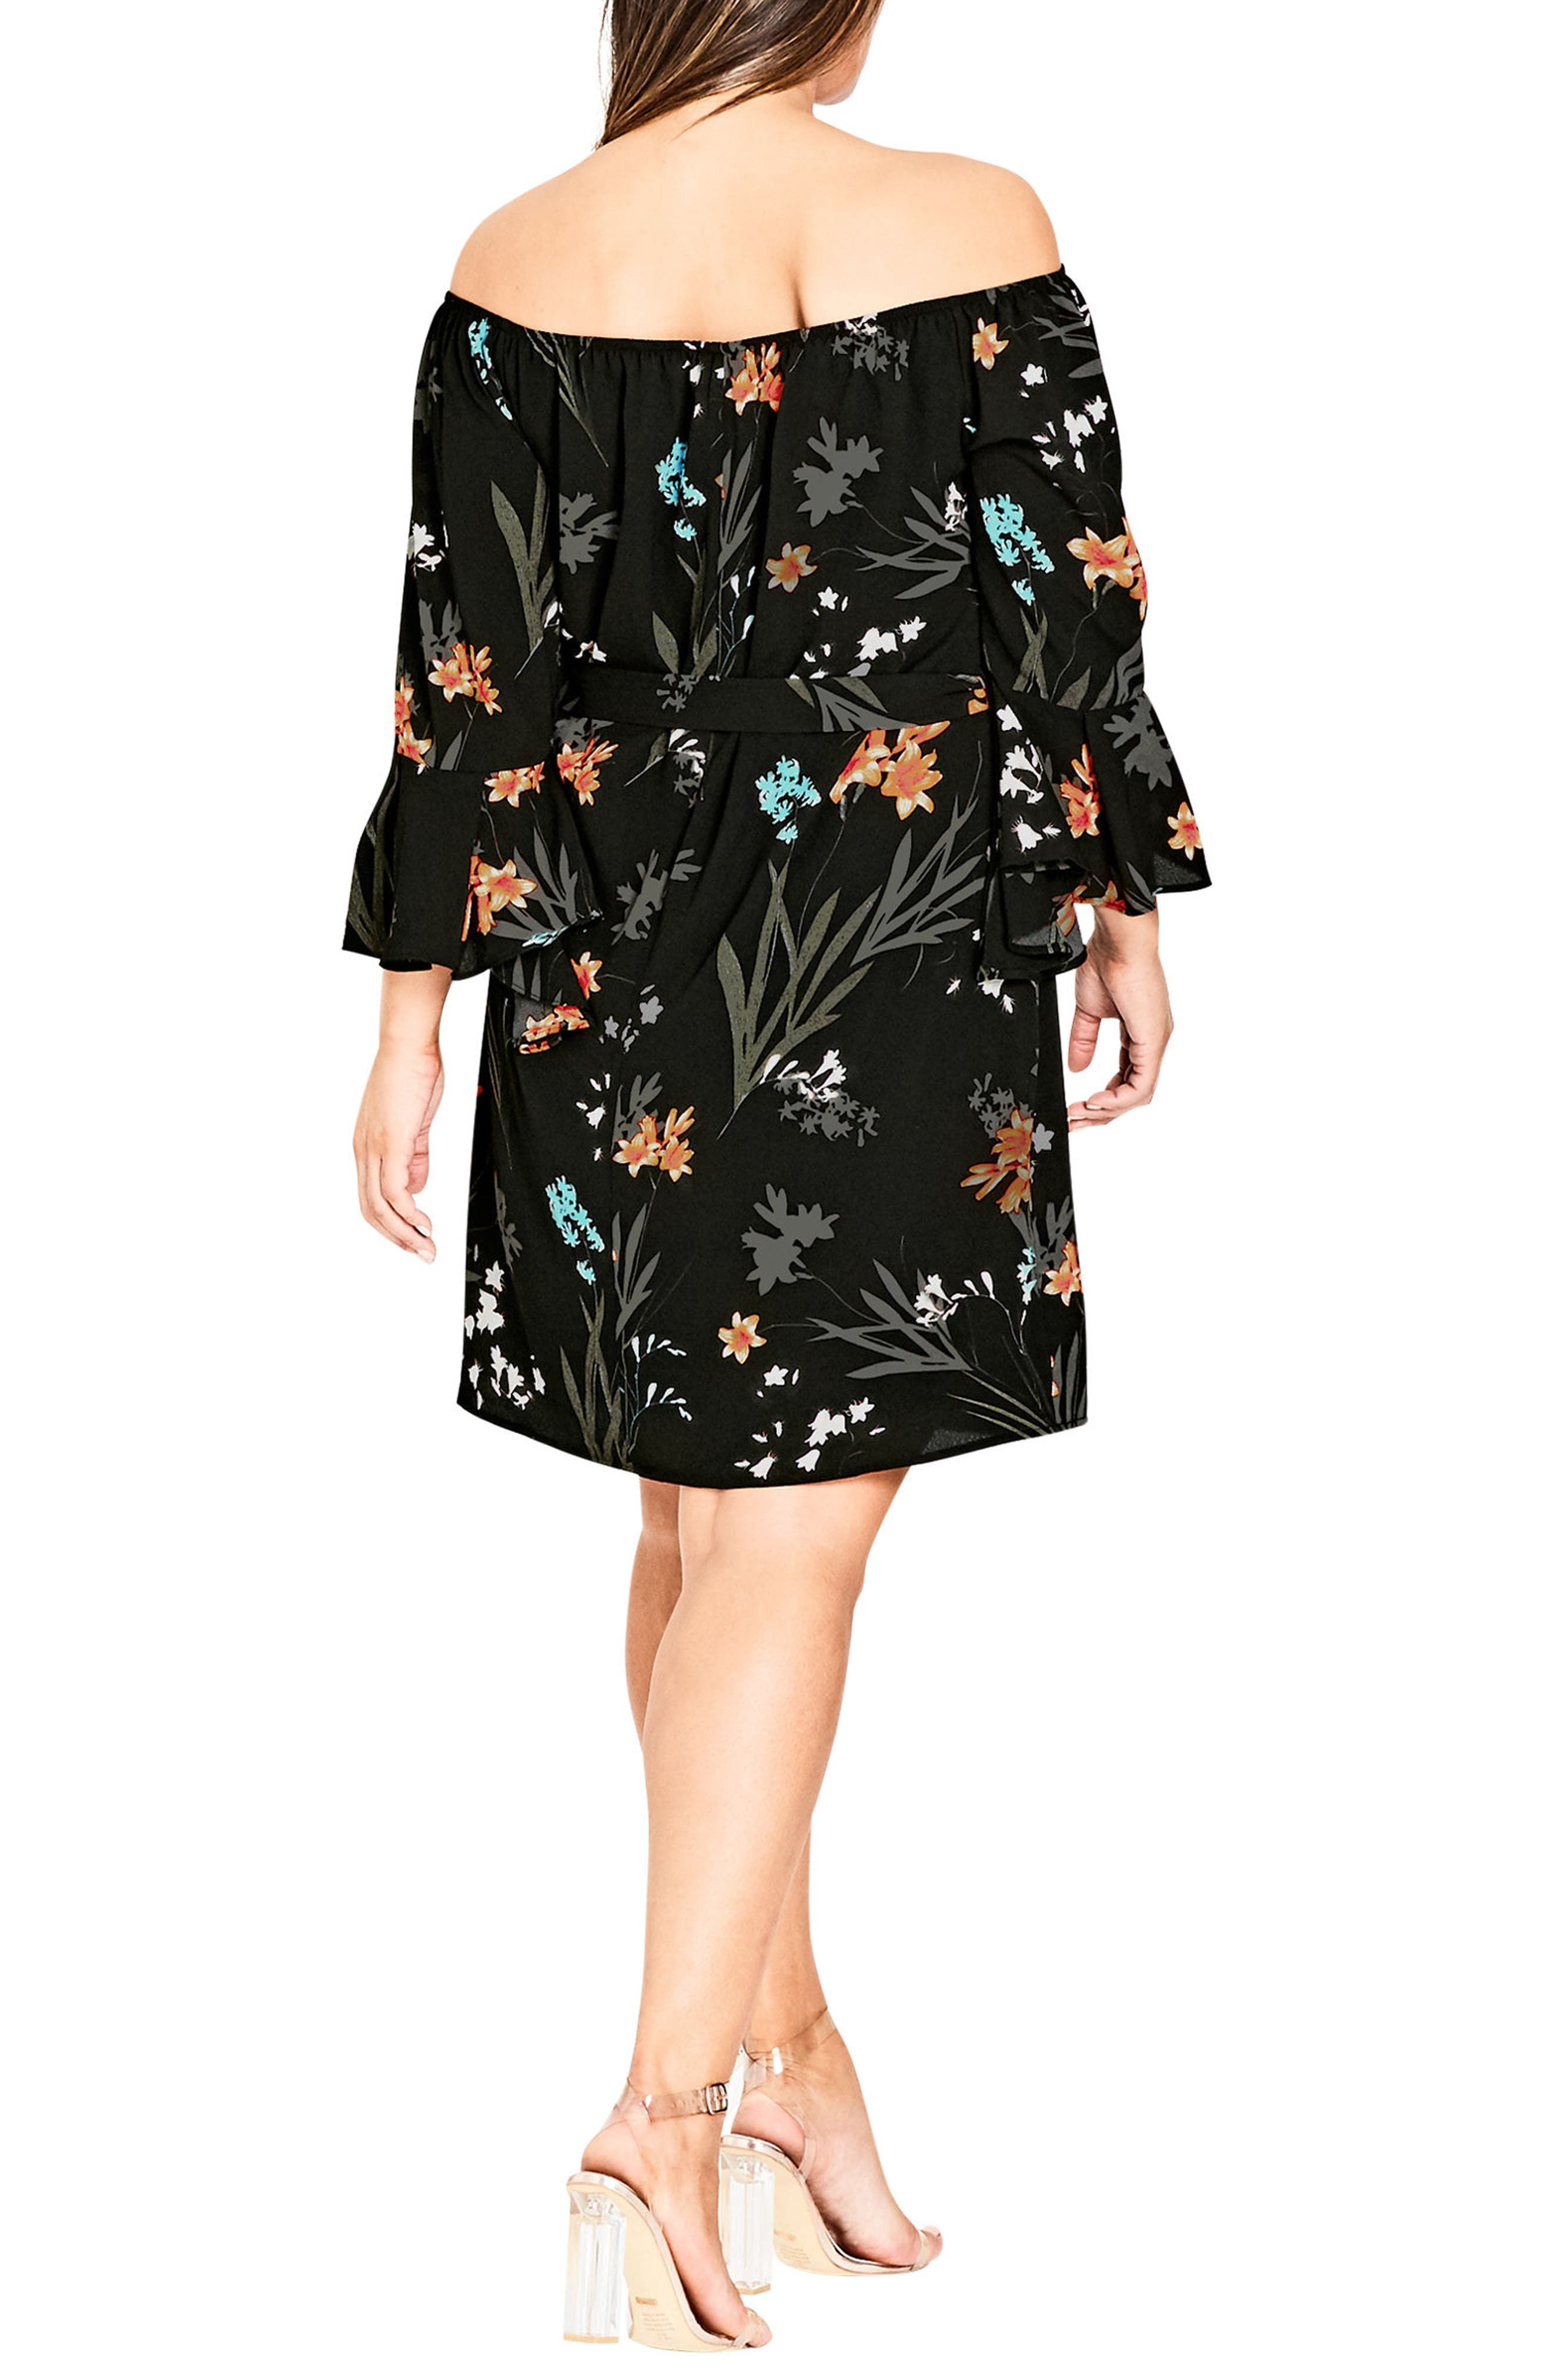 Wild Floral Off the Shoulder Tunic Dress,                             Alternate thumbnail 2, color,                             601